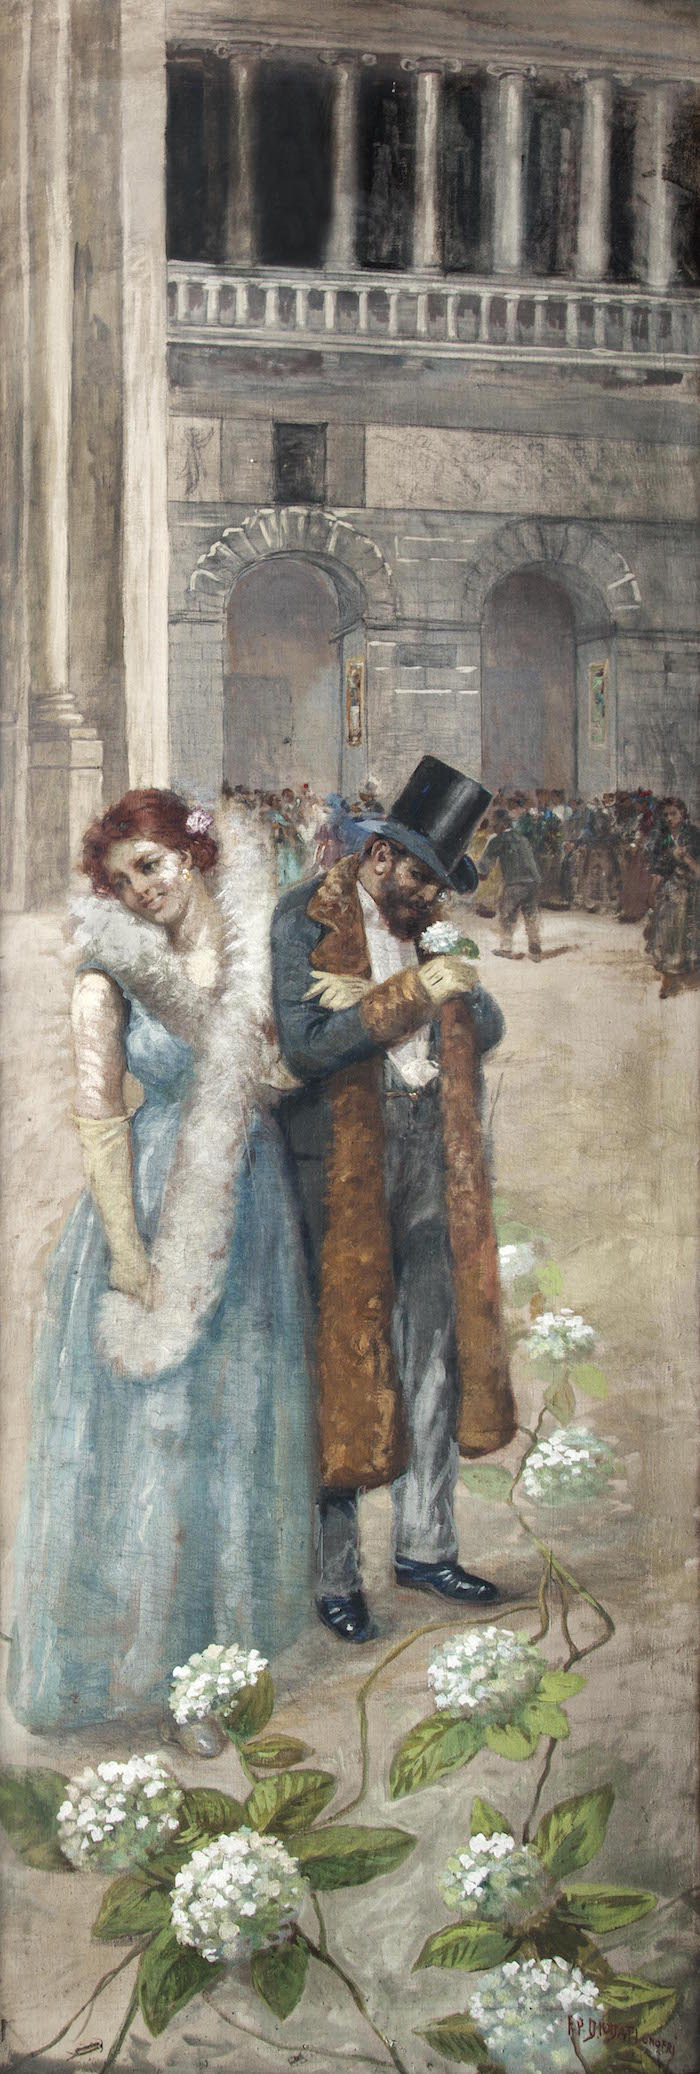 After the San Carlo, Francesco Paolo Diodati